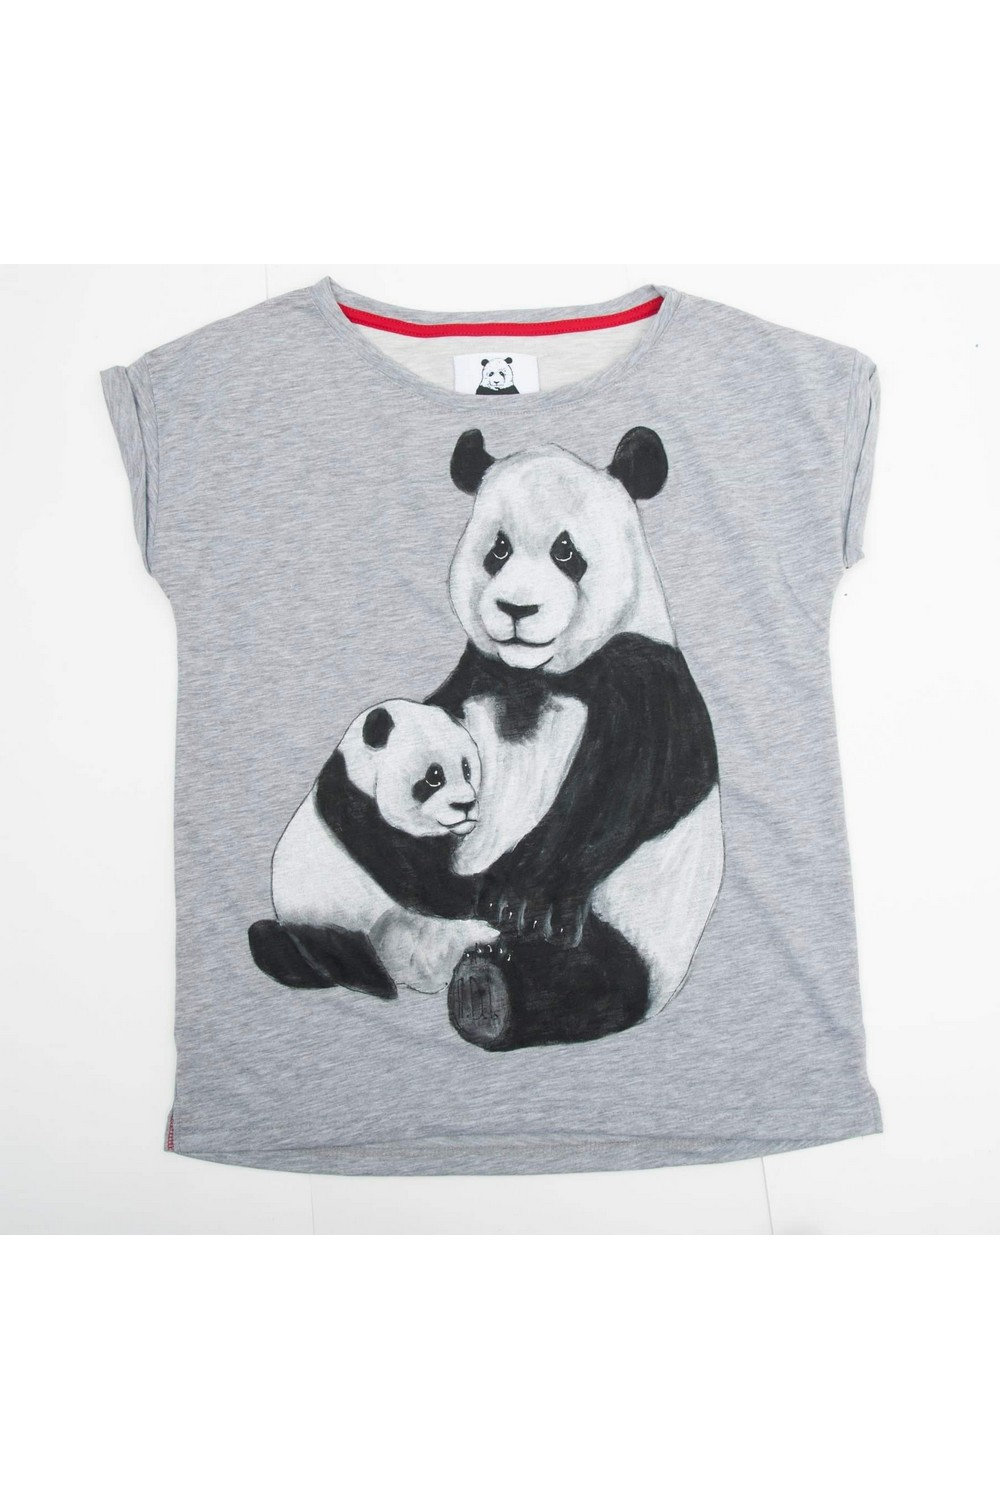 Buy Unisex Comfy Gray Cotton Print tee shirt , Short sleeve Panda tshirt, Unique stylish t shirt